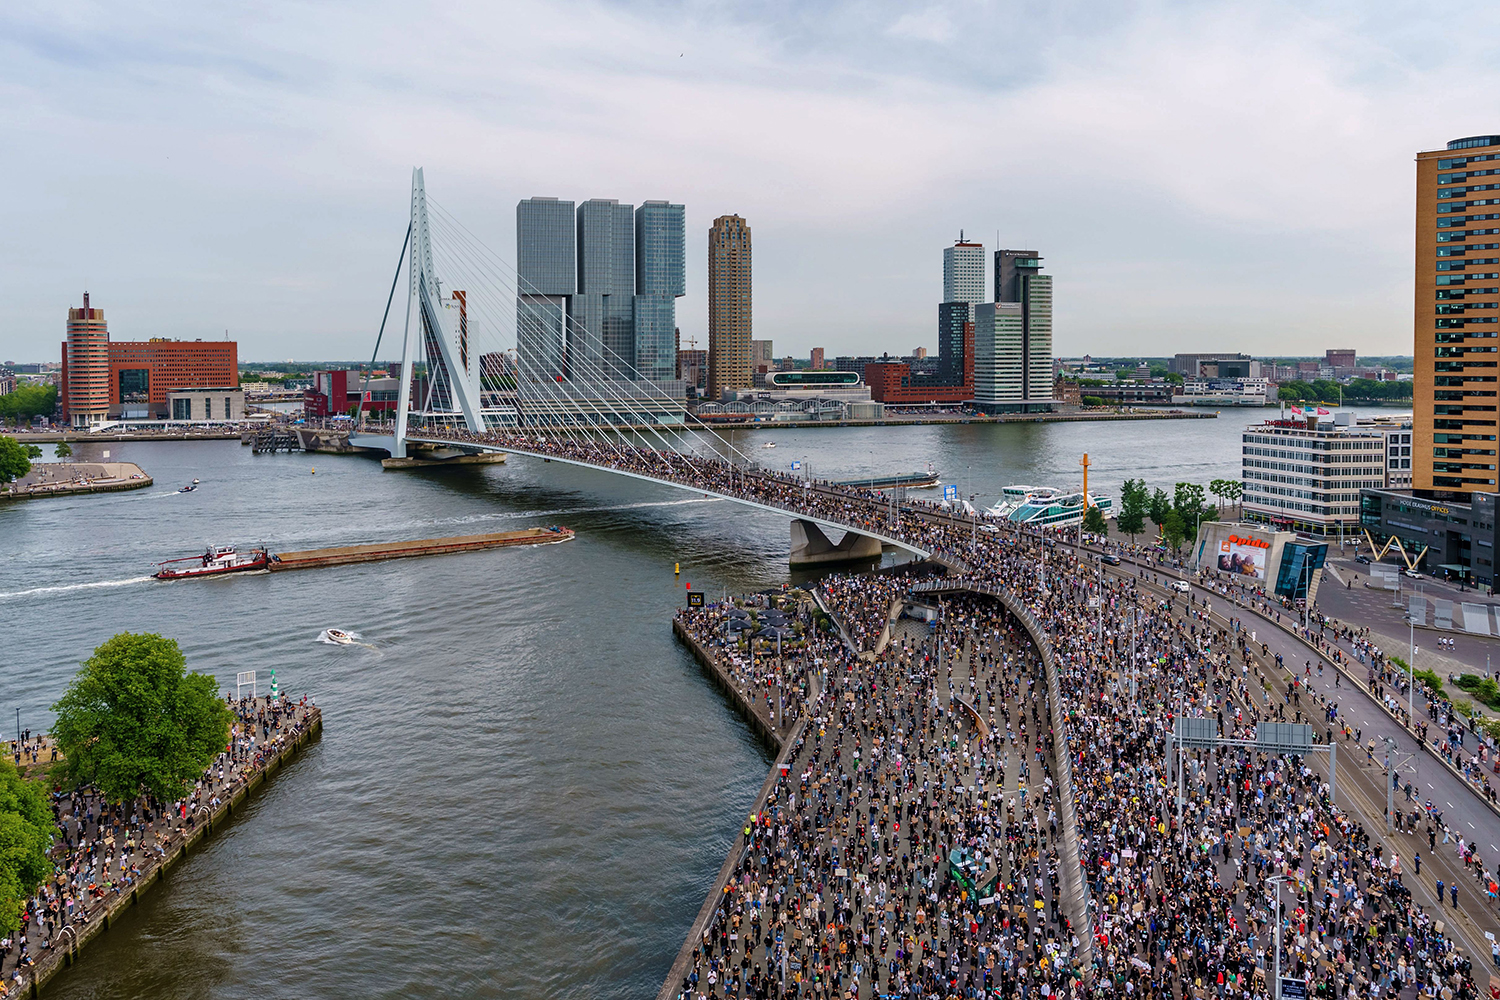 People gather on Erasmus Bridge in the Netherlands during a protest June 3 in solidarity with Americans demonstrating over the death of George Floyd. MARCO DE SWART/ANP/AFP via Getty Images